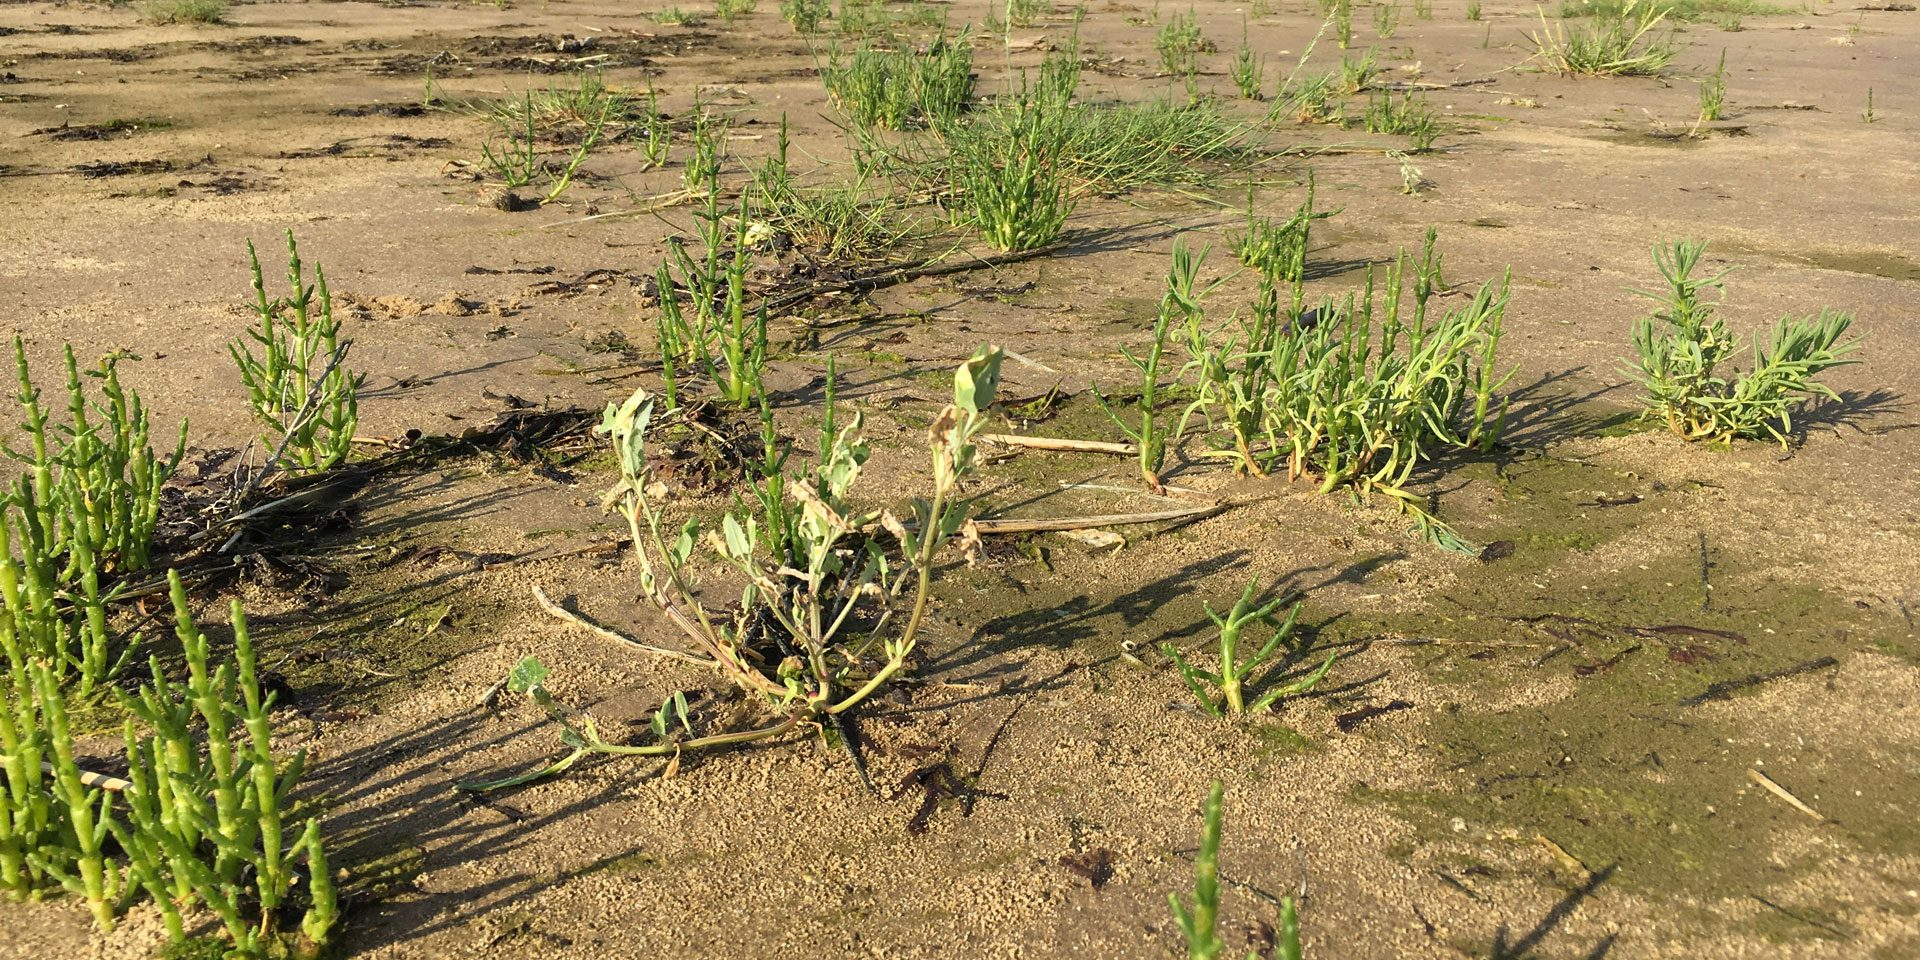 July 2019: An extensive Samphire bed at Hoylake, killed a week later with glyphosate spraying.